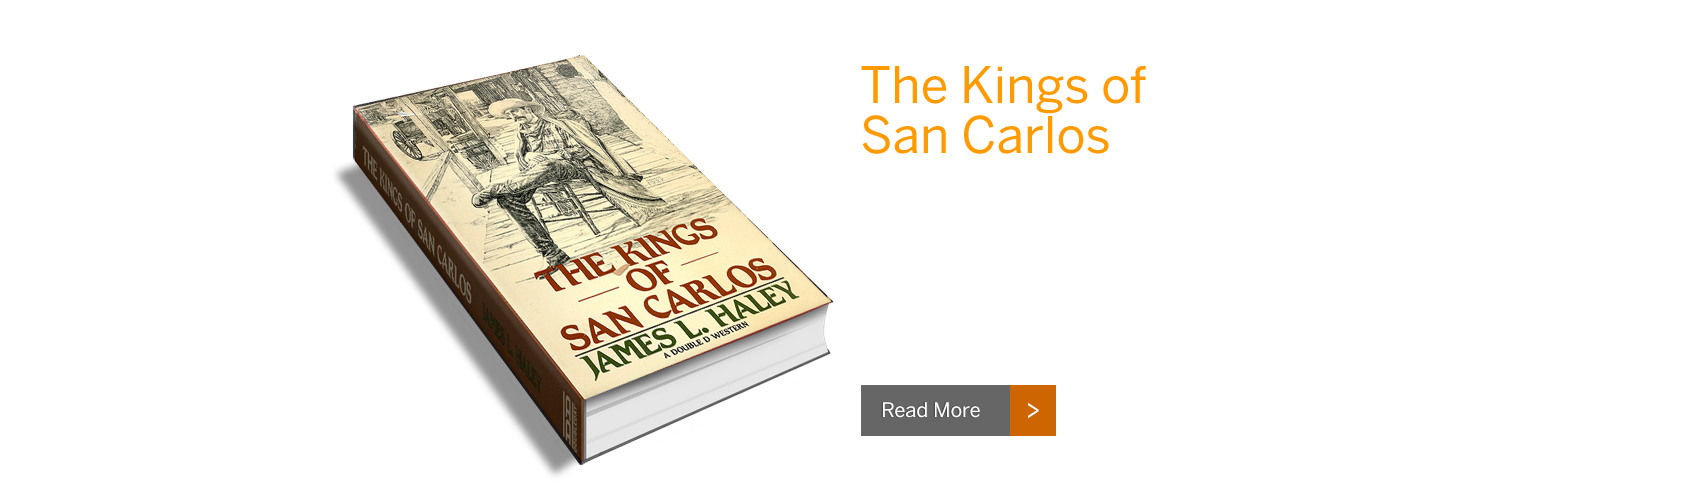 kings of san carlos